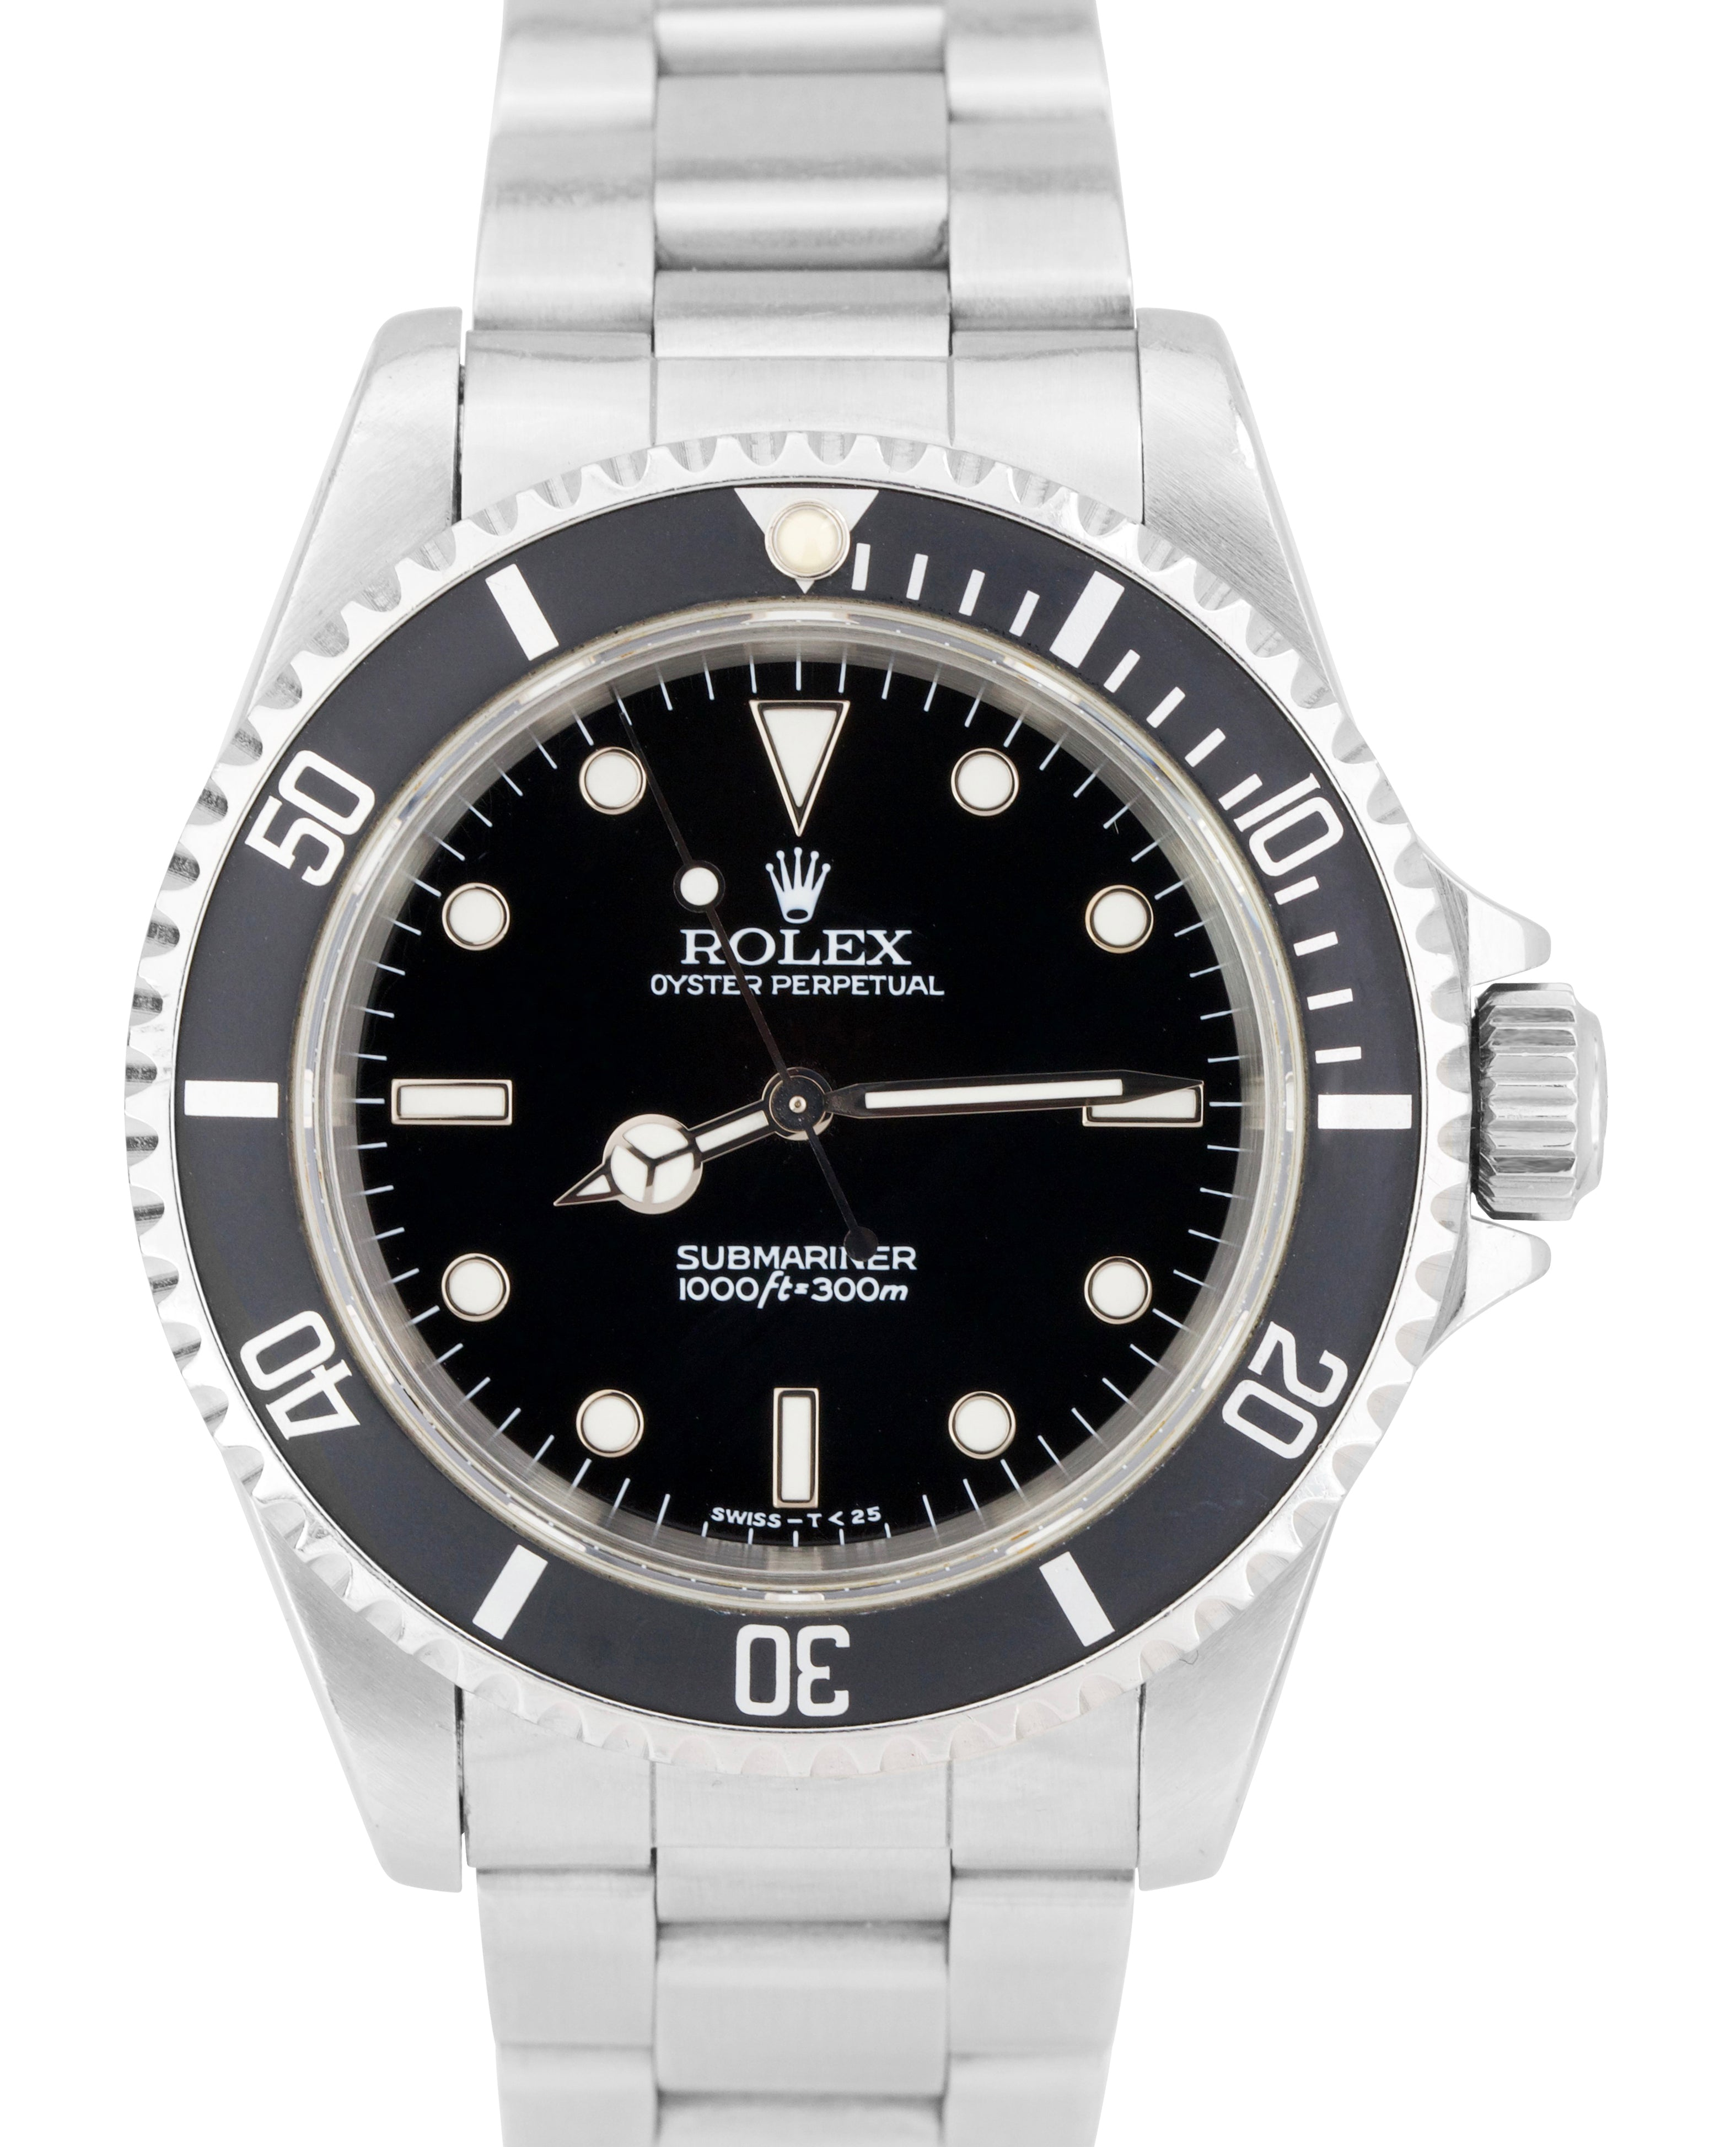 1996 Men's Rolex Submariner No-Date 14060 T SERIAL PATINA Dive 40mm Watch